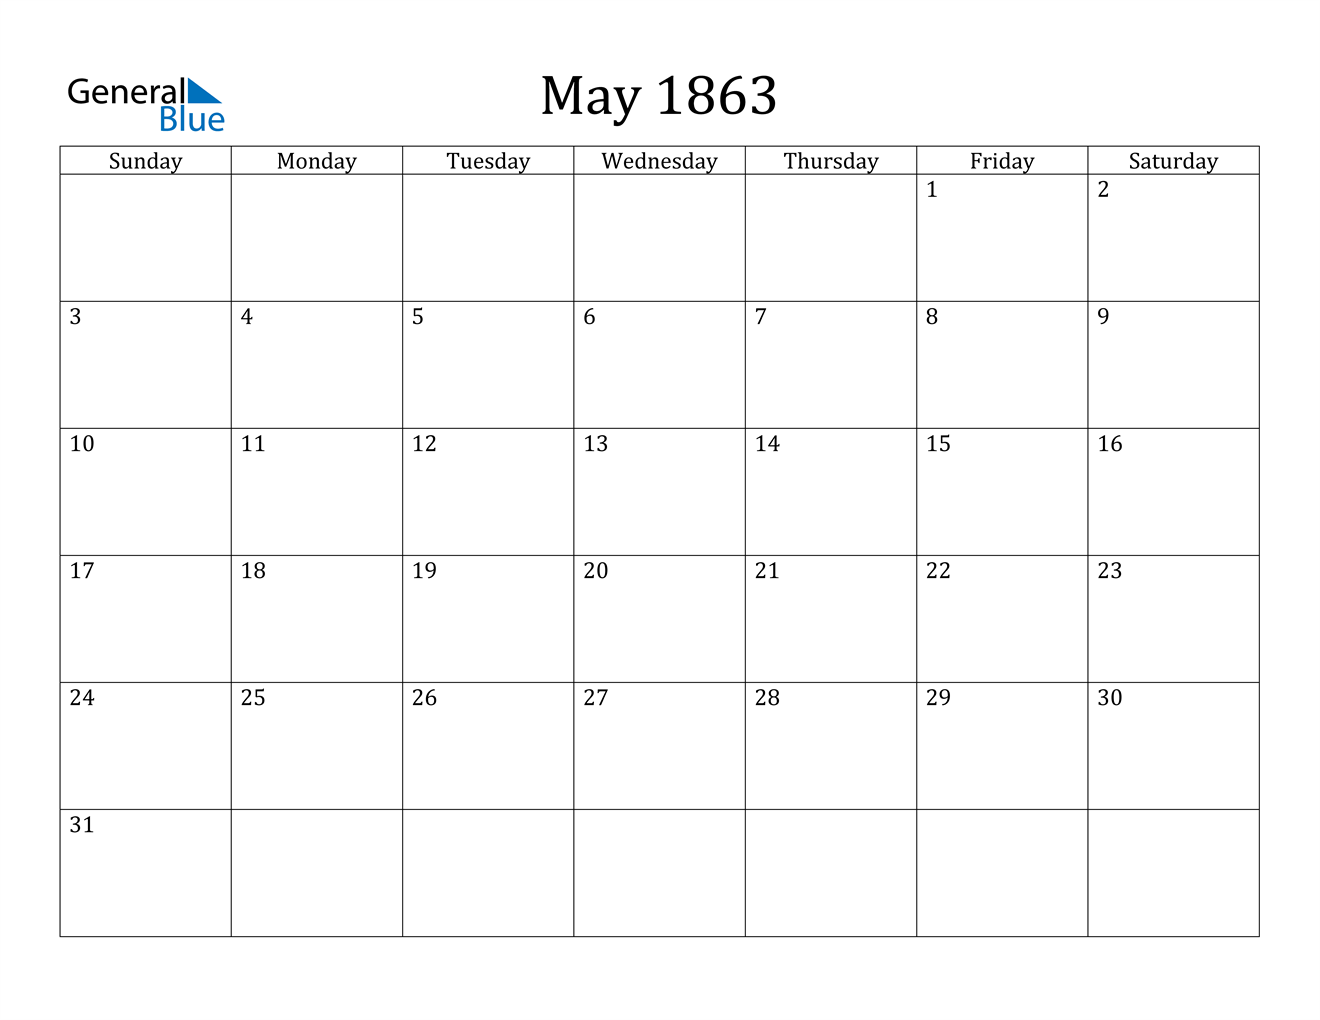 Image of May 1863 Calendar